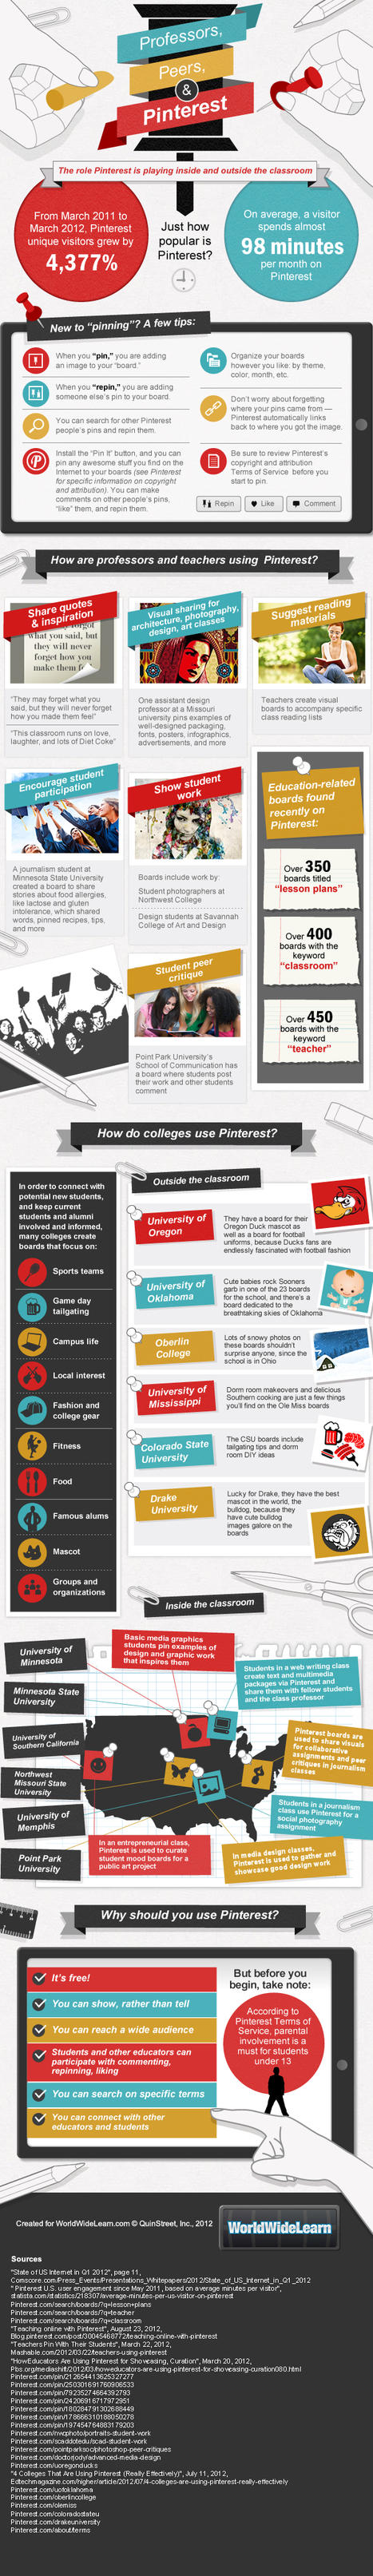 Professors, Peers, & Pinterest: The role Pinterest is playing inside and outside the classroom | INFOGRAPHIC: | Create, Innovate & Evaluate in Higher Education | Scoop.it